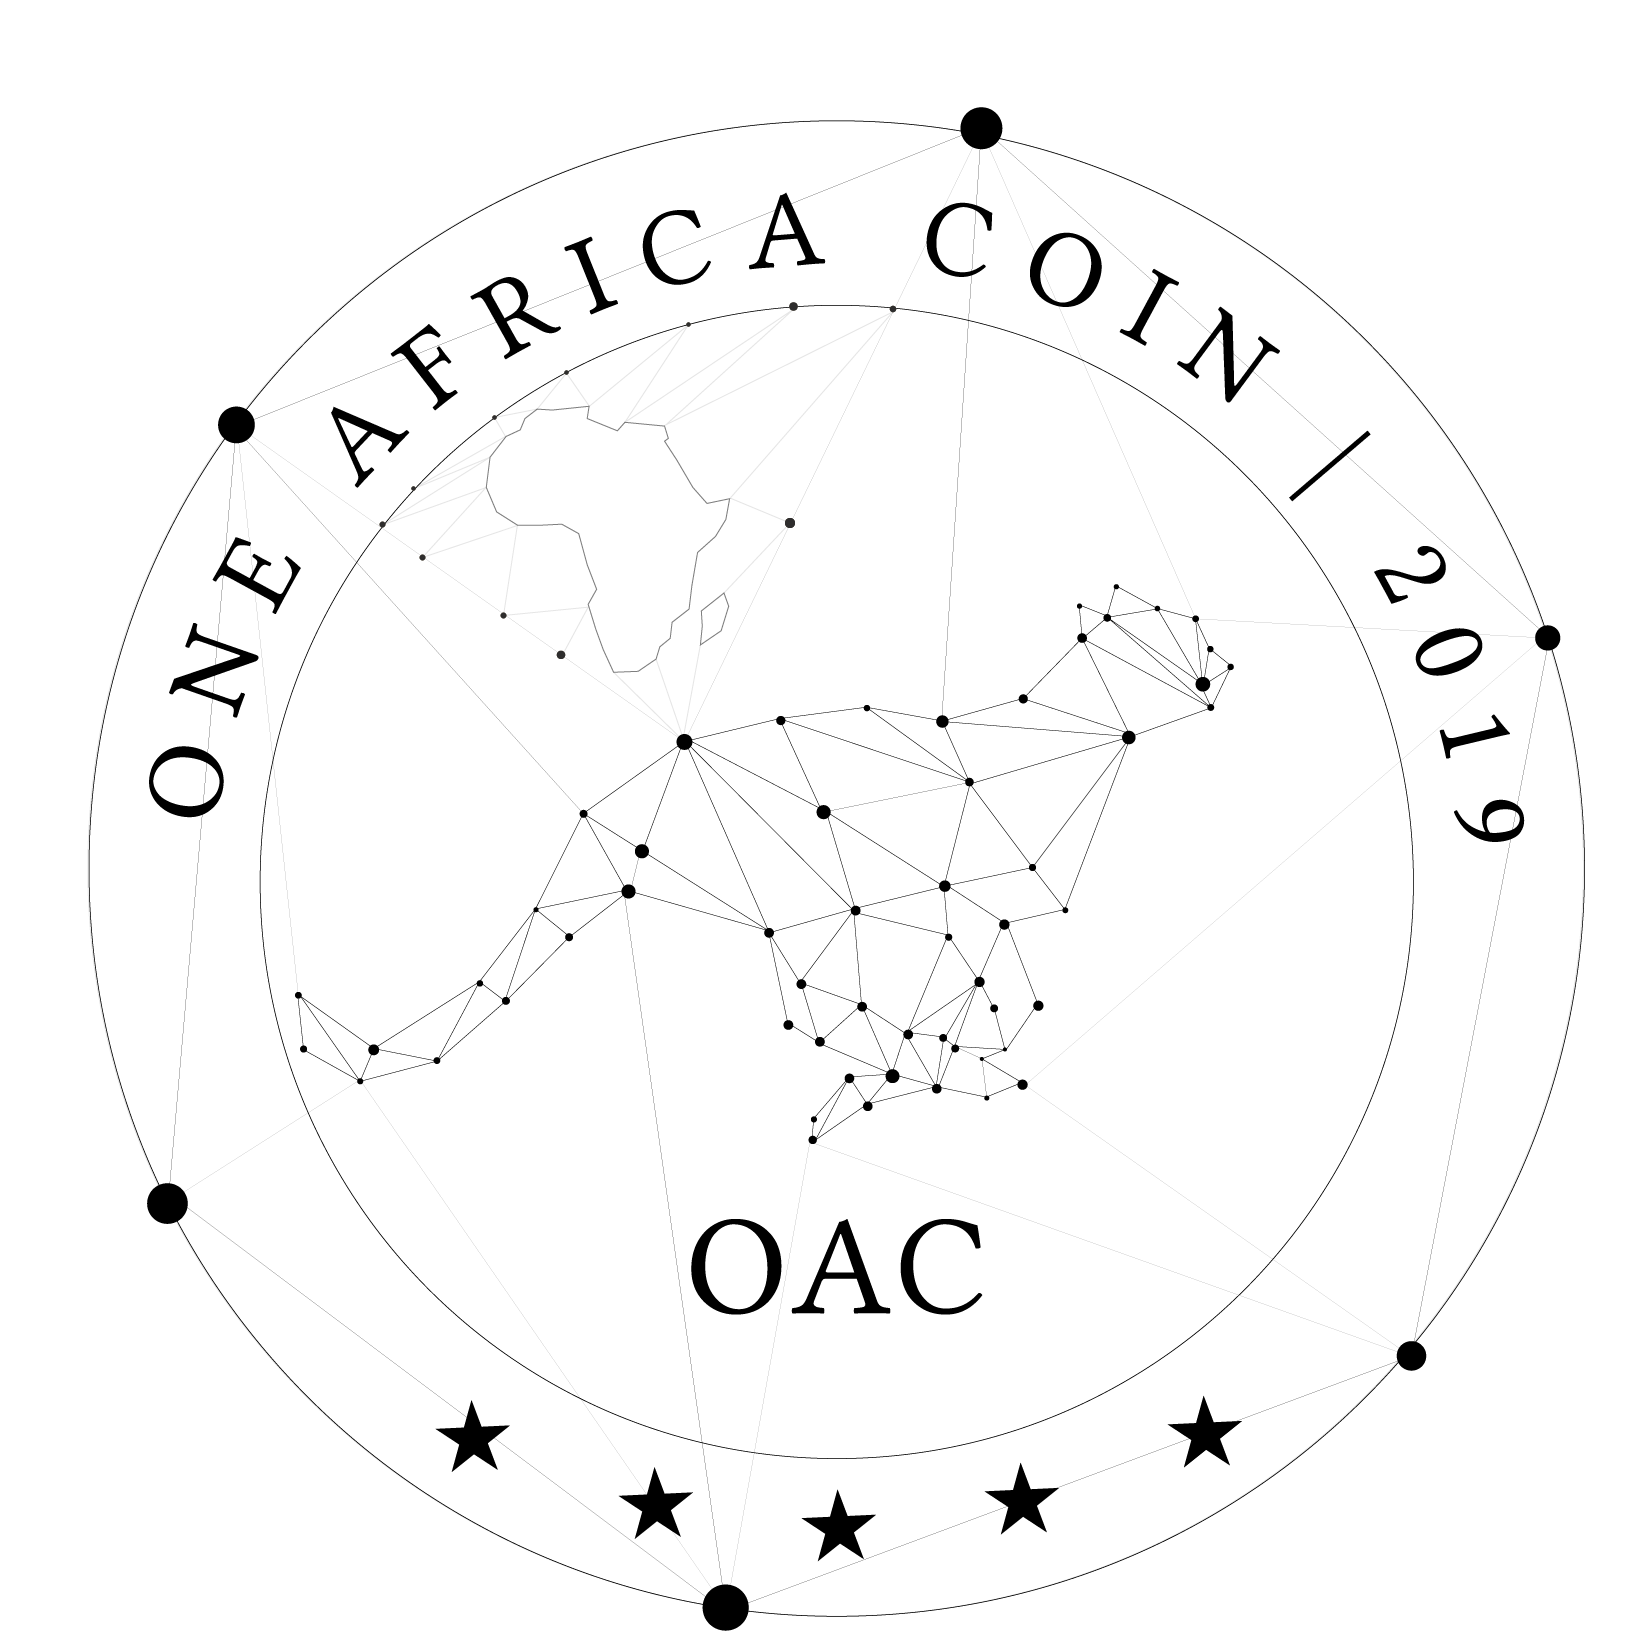 OAC_one_africa_coin_design_liquidinterface_pierre_sima_kunz